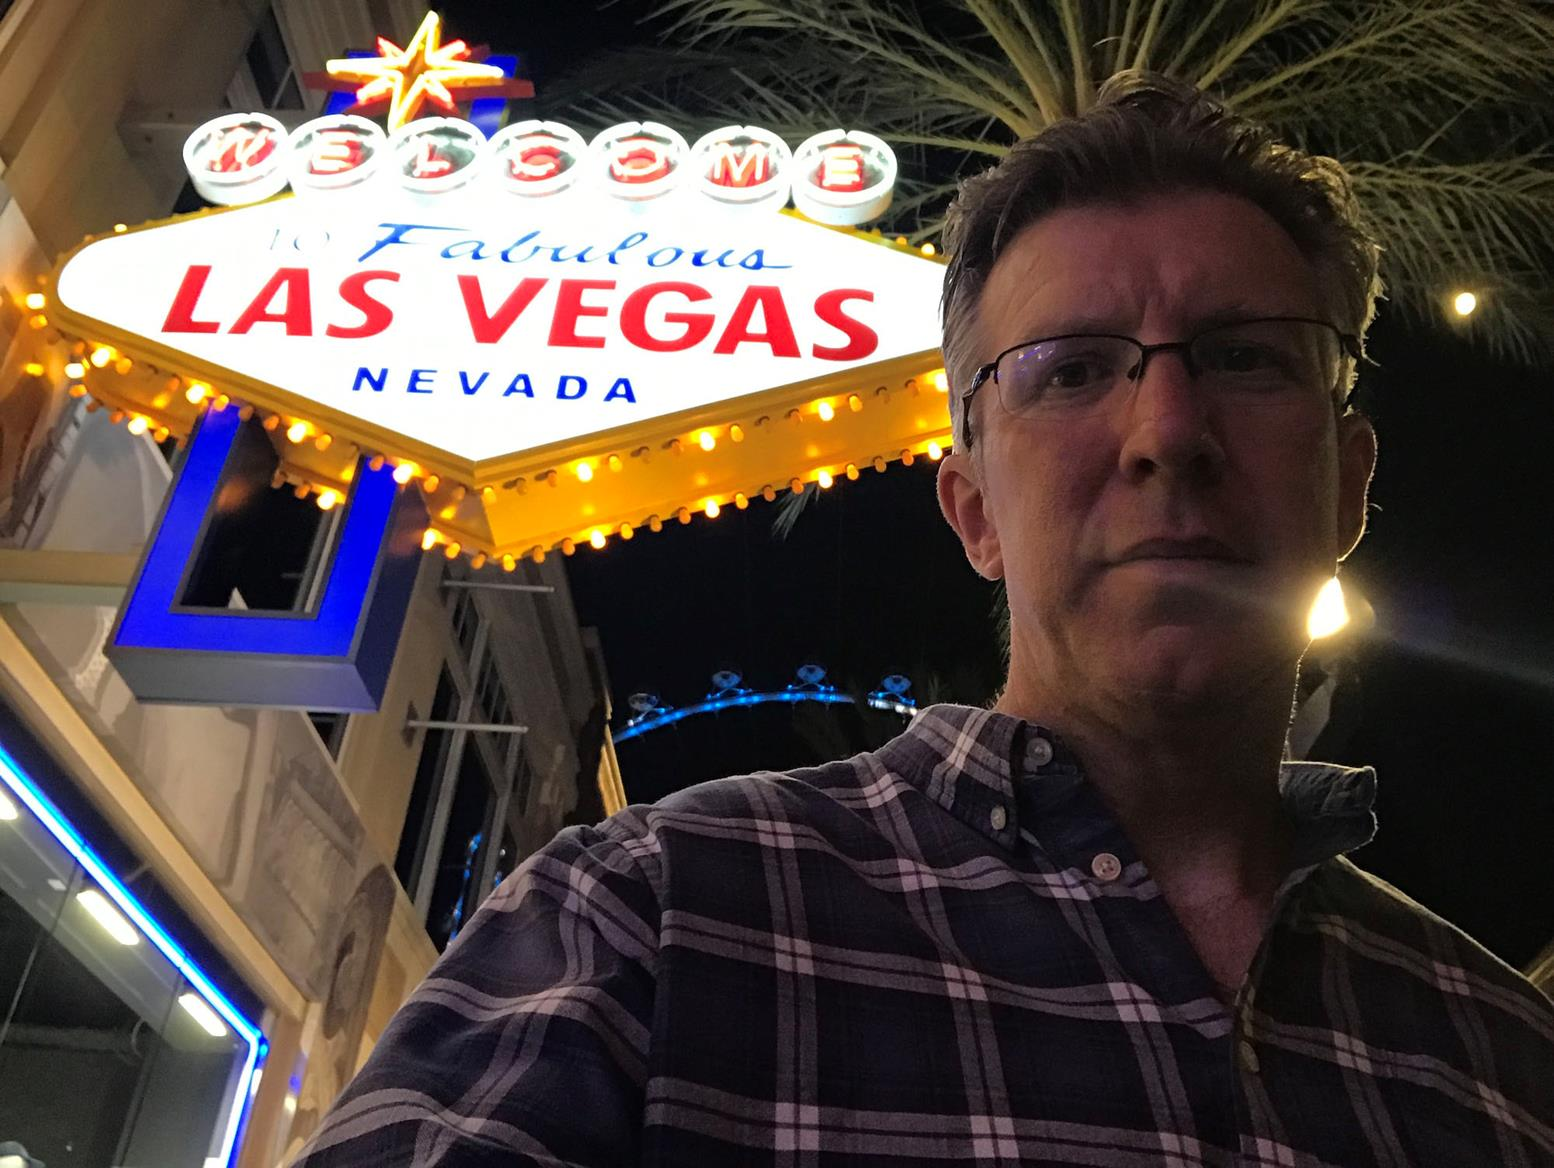 Selfie with Vegas sign